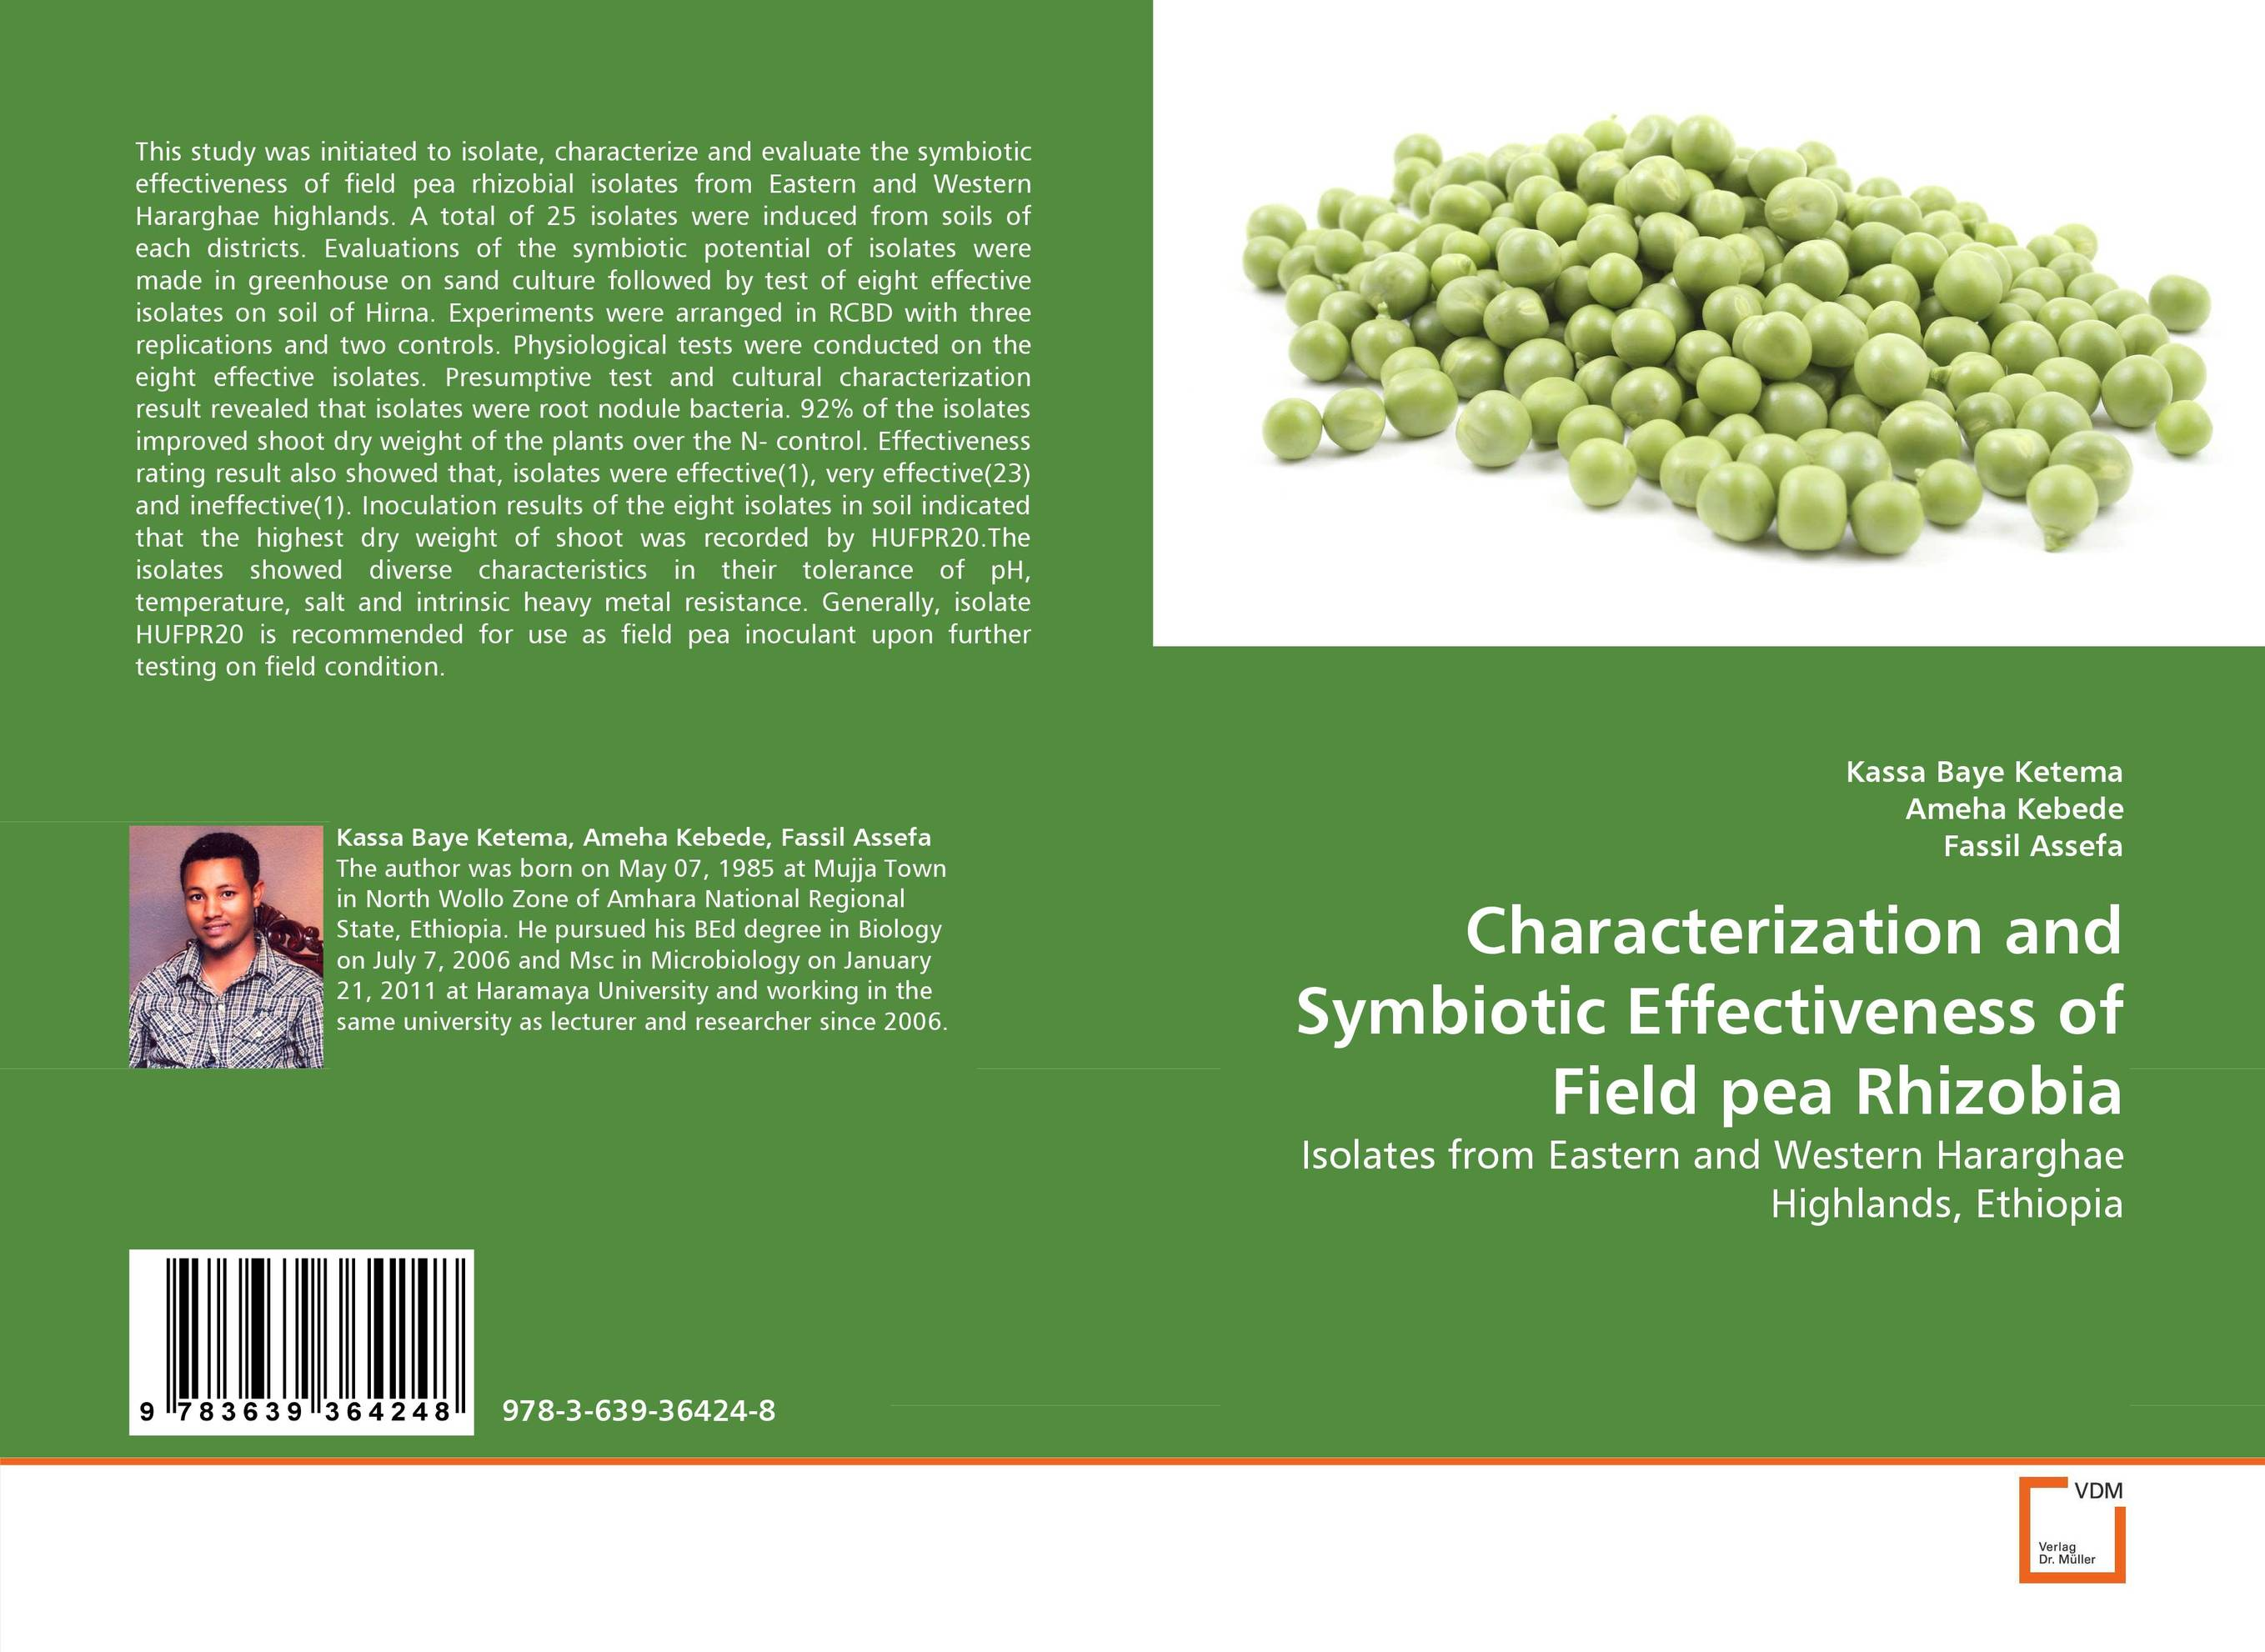 Characterization and Symbiotic Effectiveness of Field pea Rhizobia